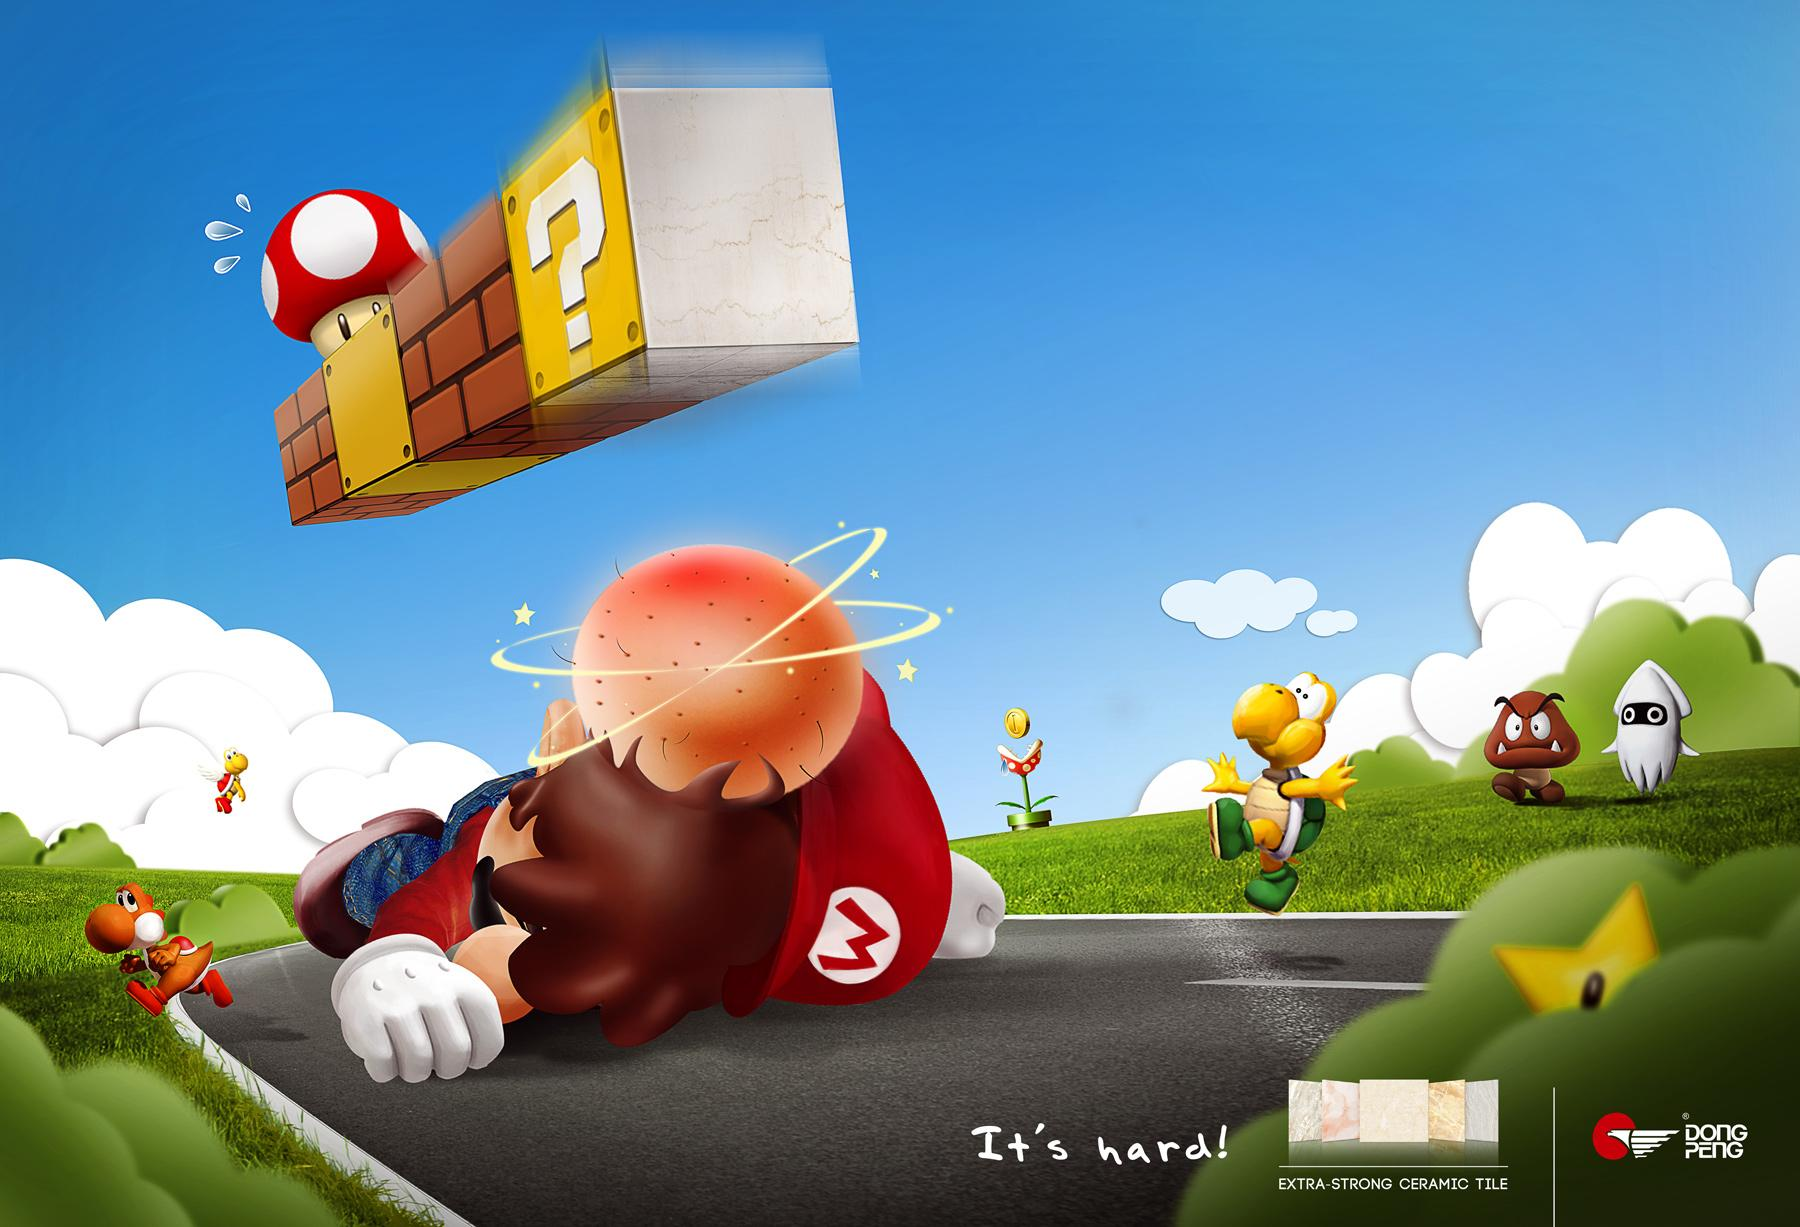 DongPeng Print Ad -  It's hard, Super Mario